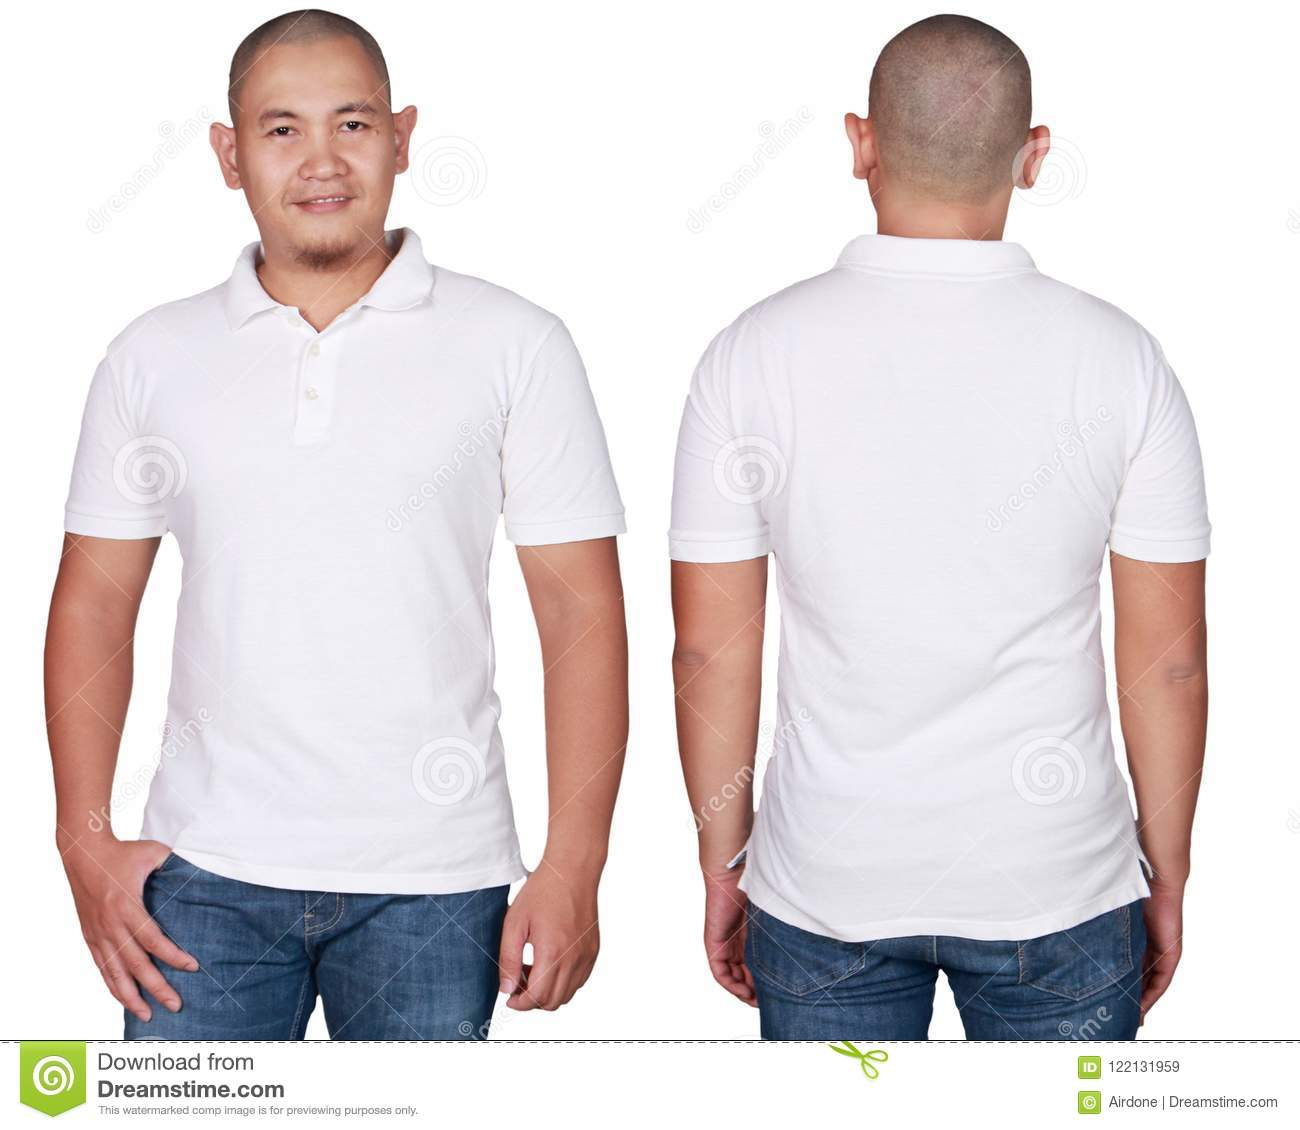 b3ce06500 White polo t-shirt mock up, front and back view, isolated. Male model wear  plain white shirt mockup. Polo shirt design template. Blank tees for print